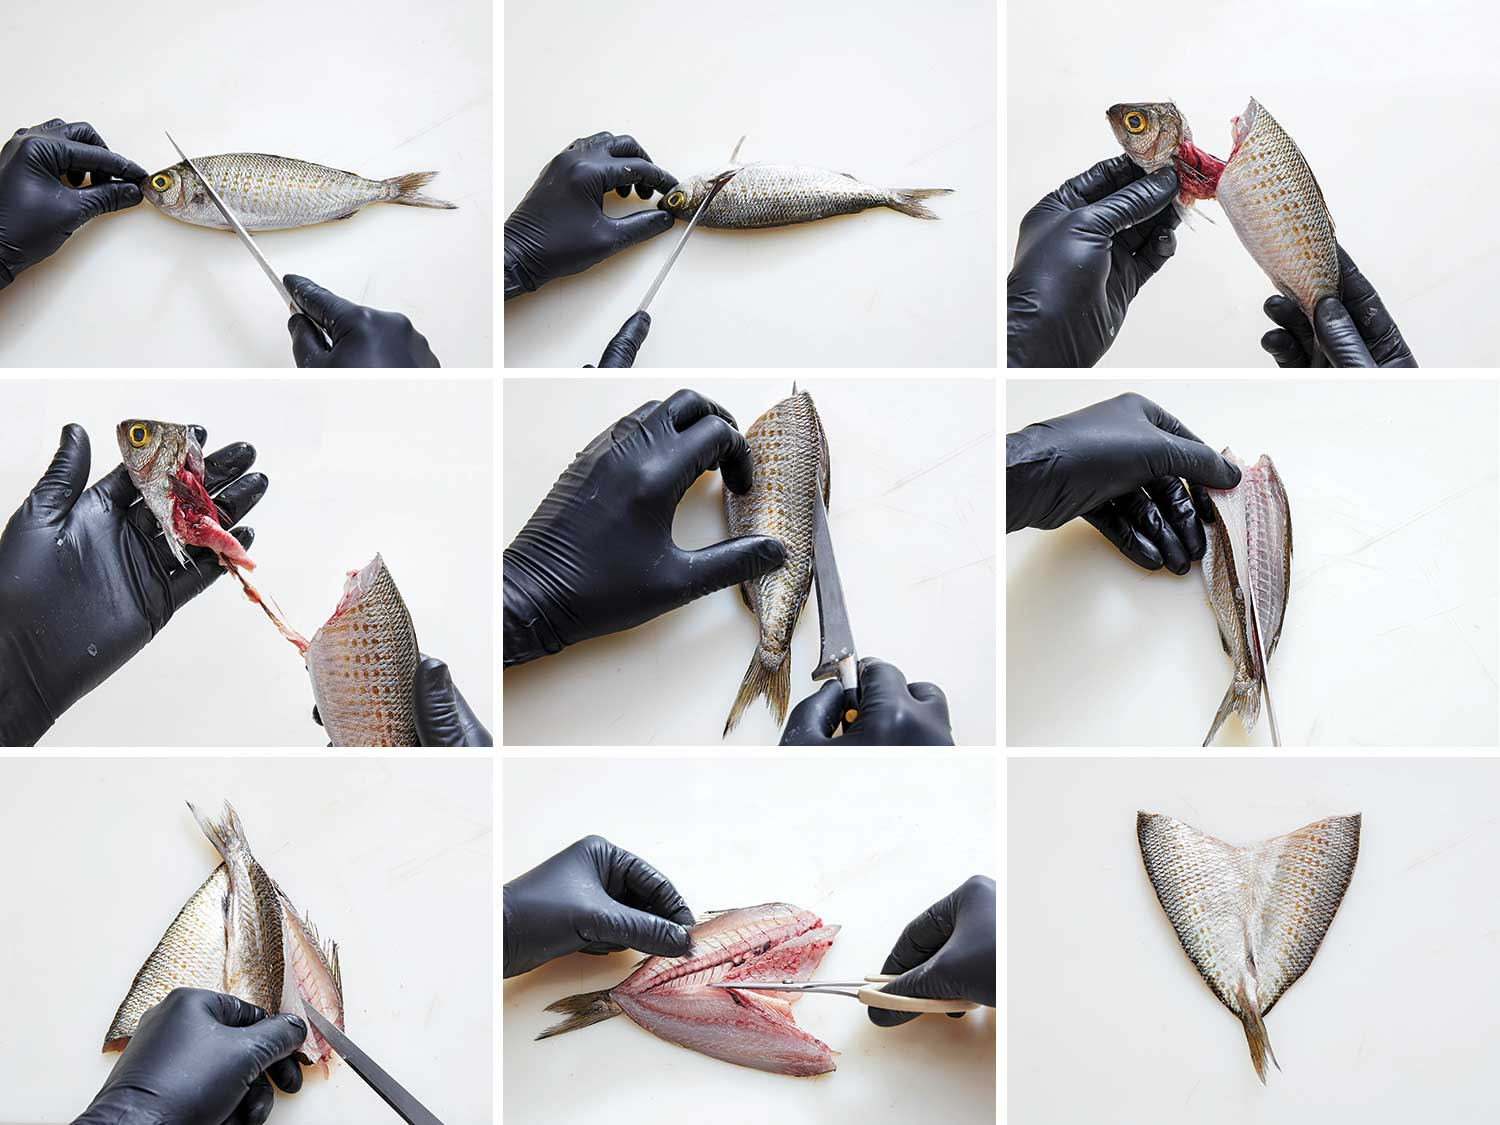 How to butterfly a fish.